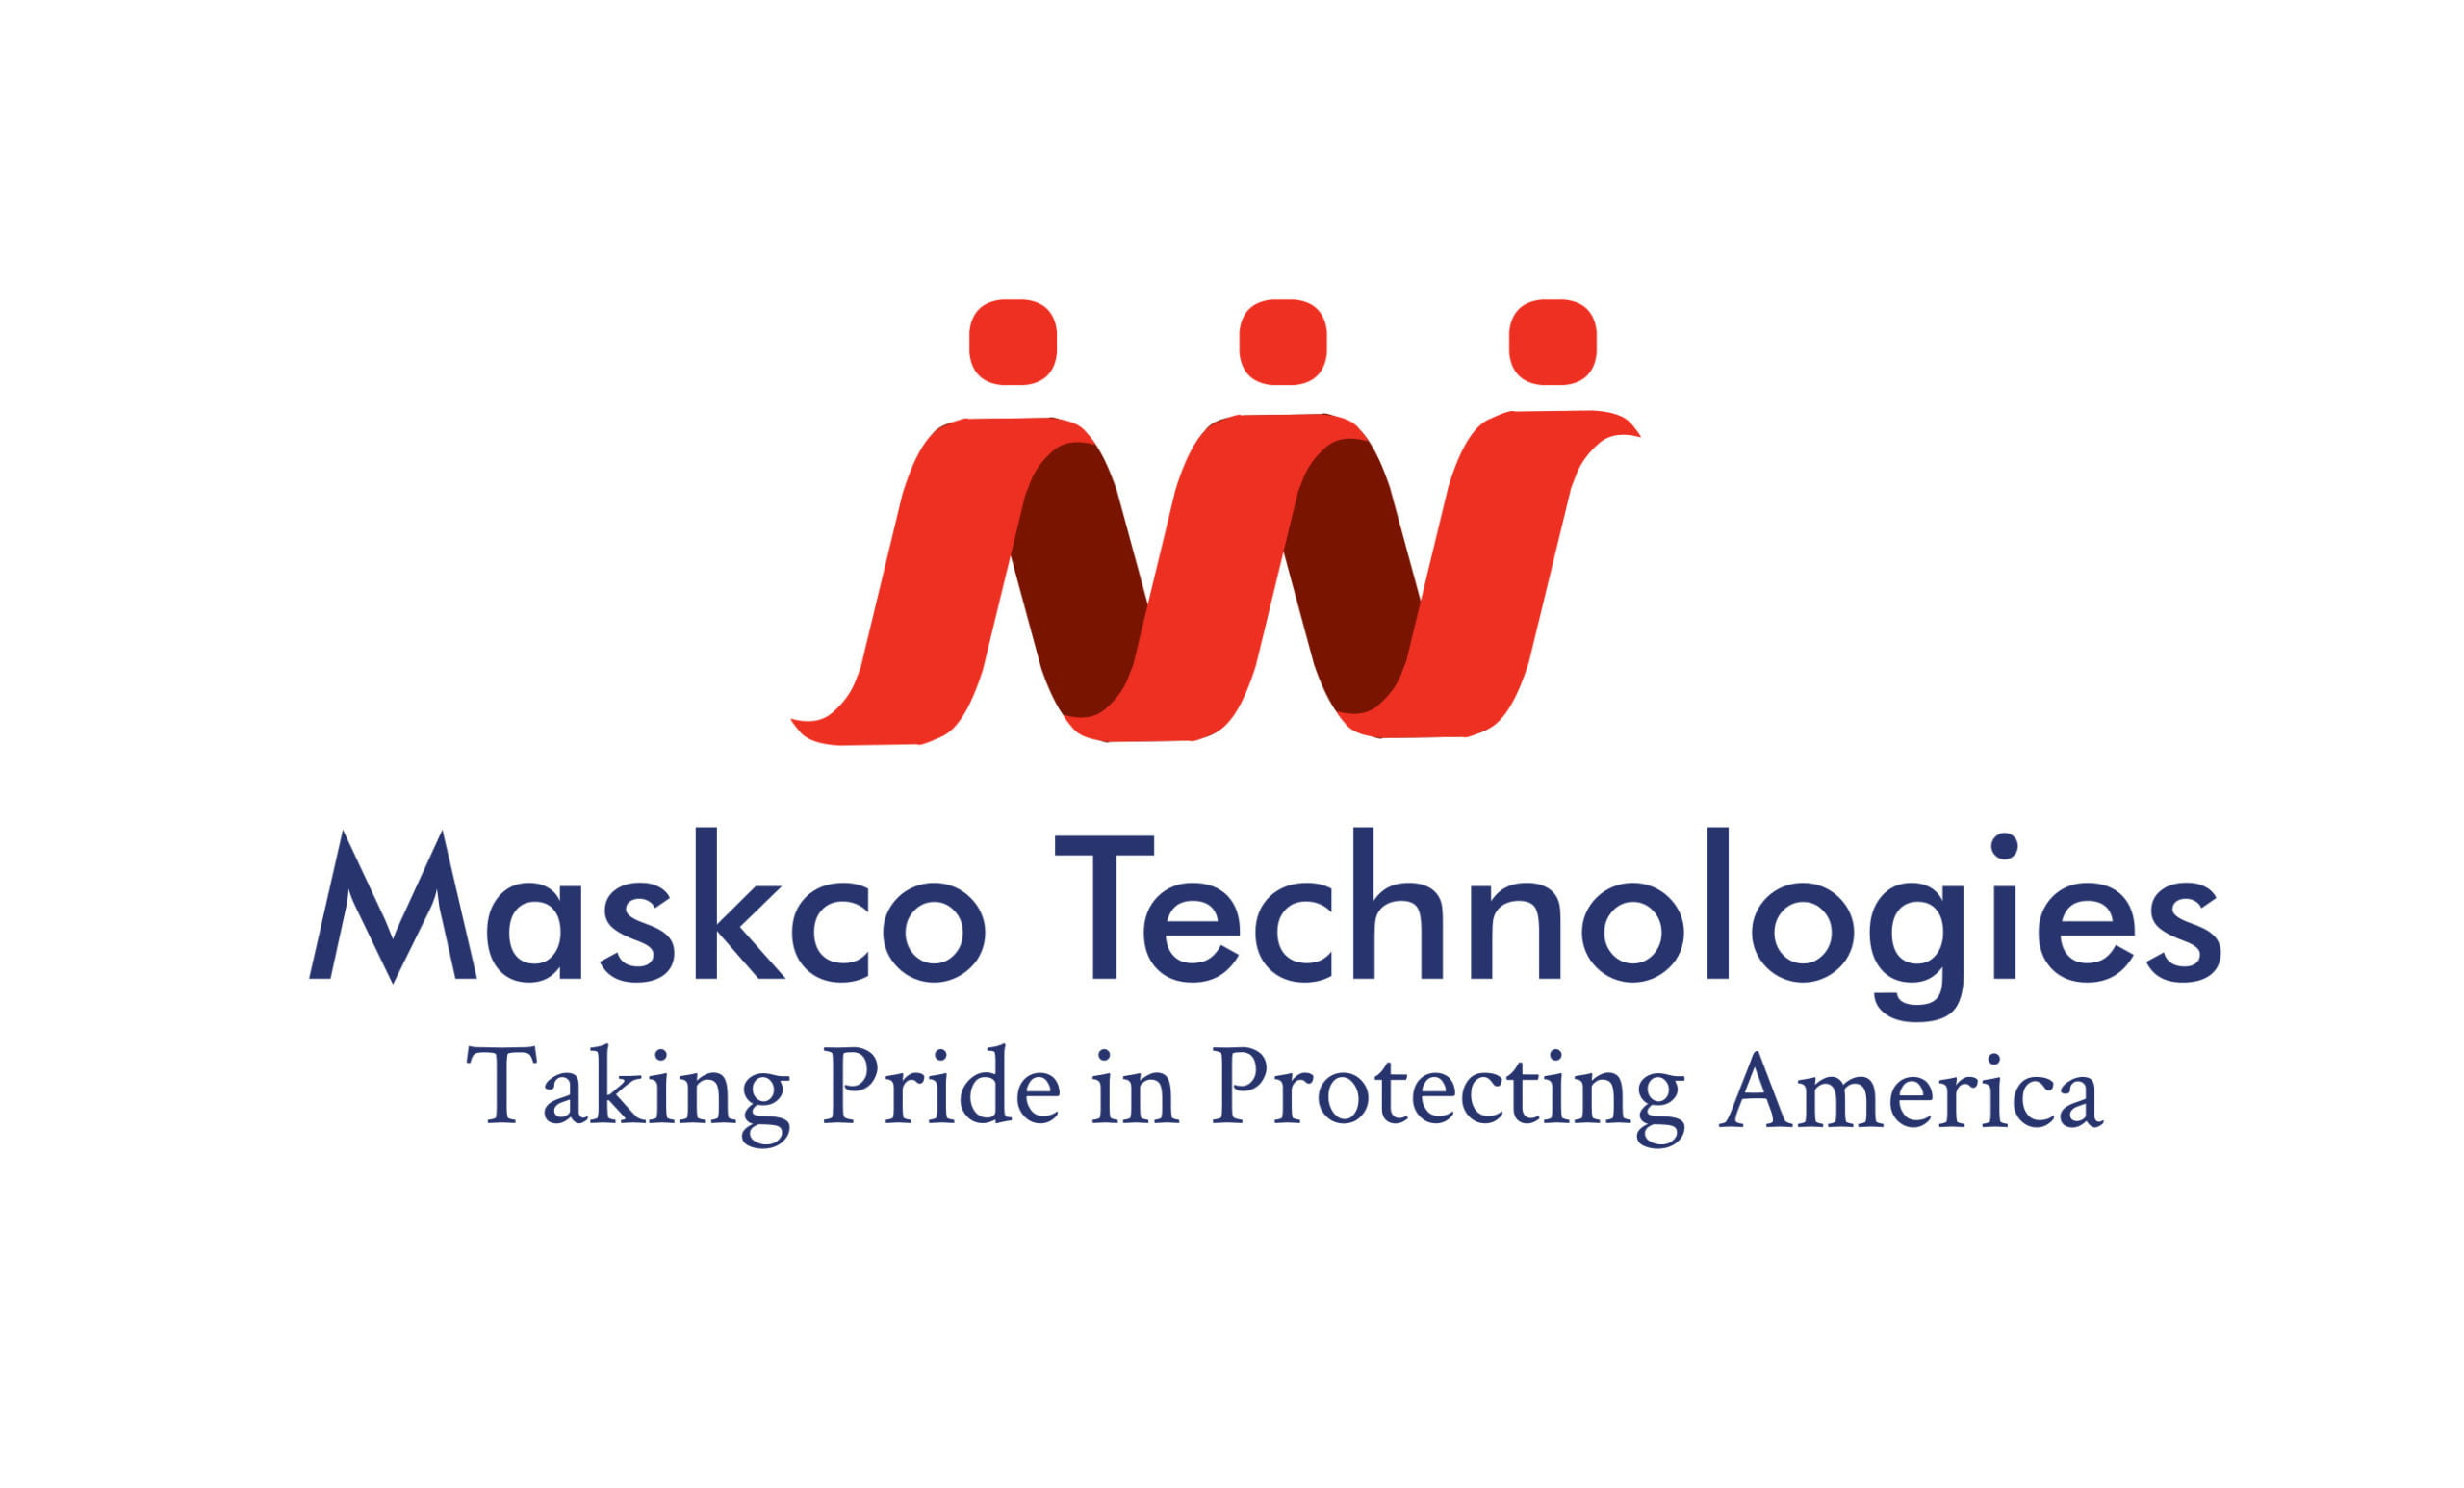 Maskco Technologies, Inc. Announces a Strategic Manufacturing Partnership and Investment With Gredale, LLC